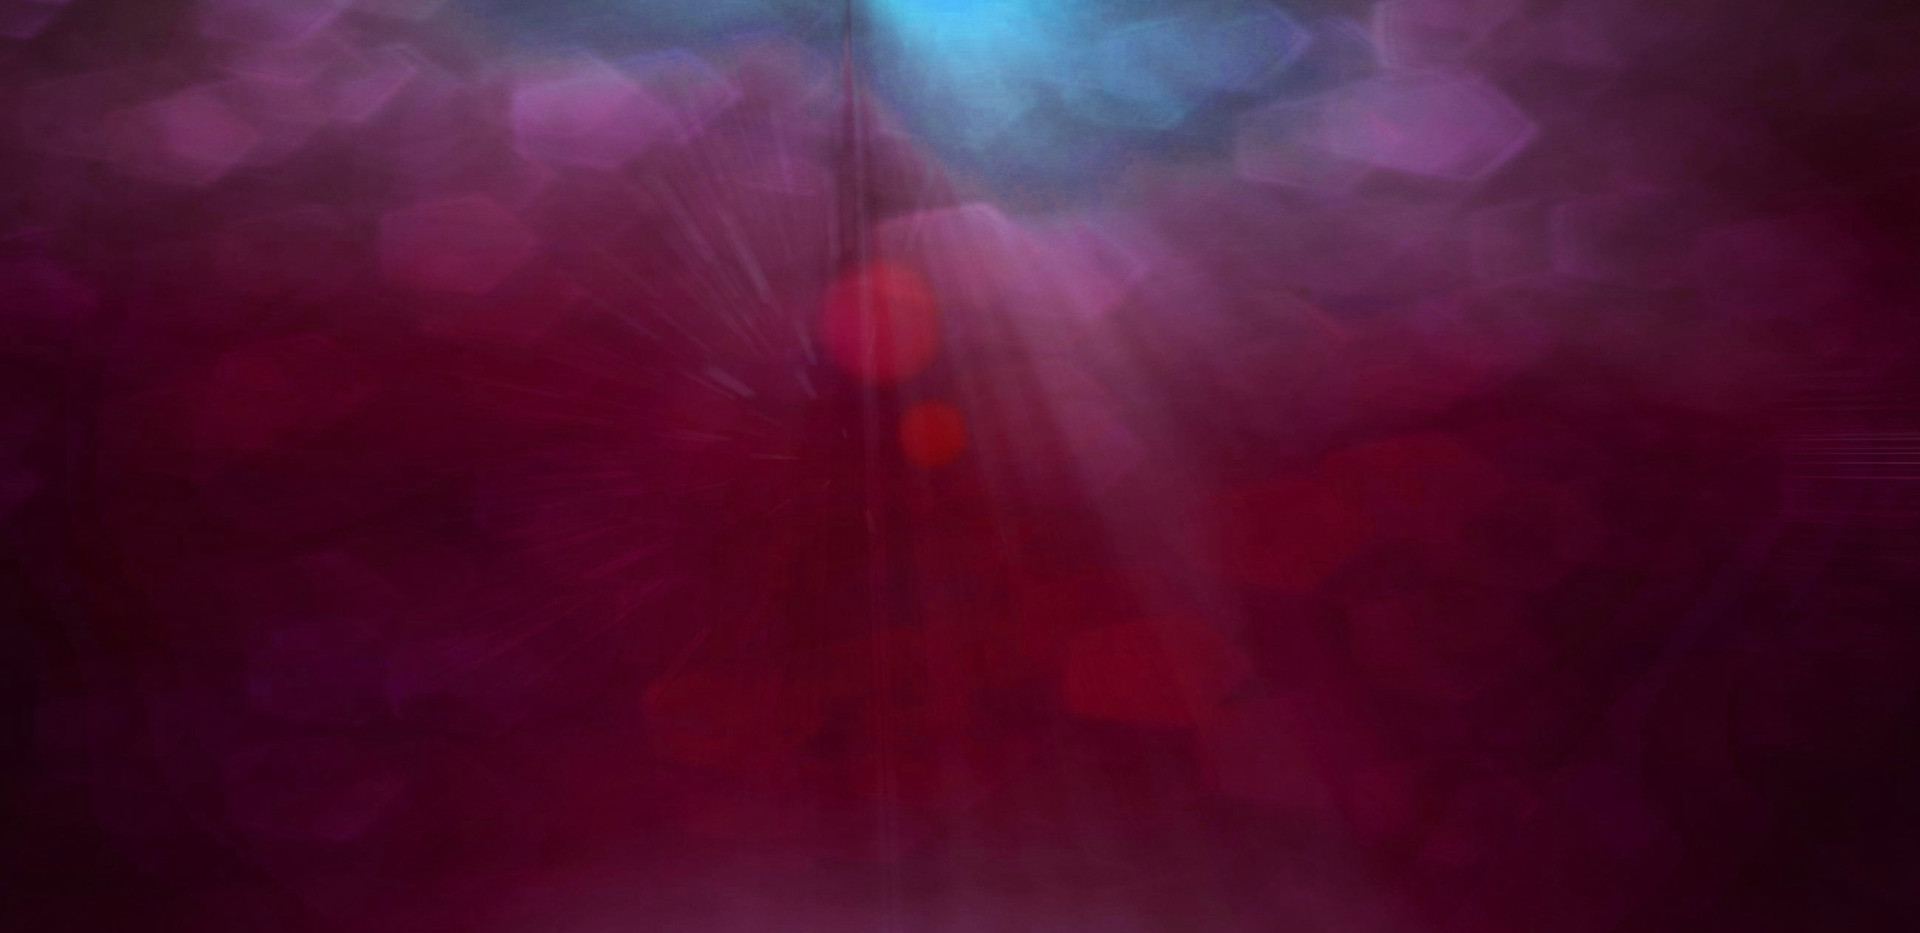 Mauve abstract